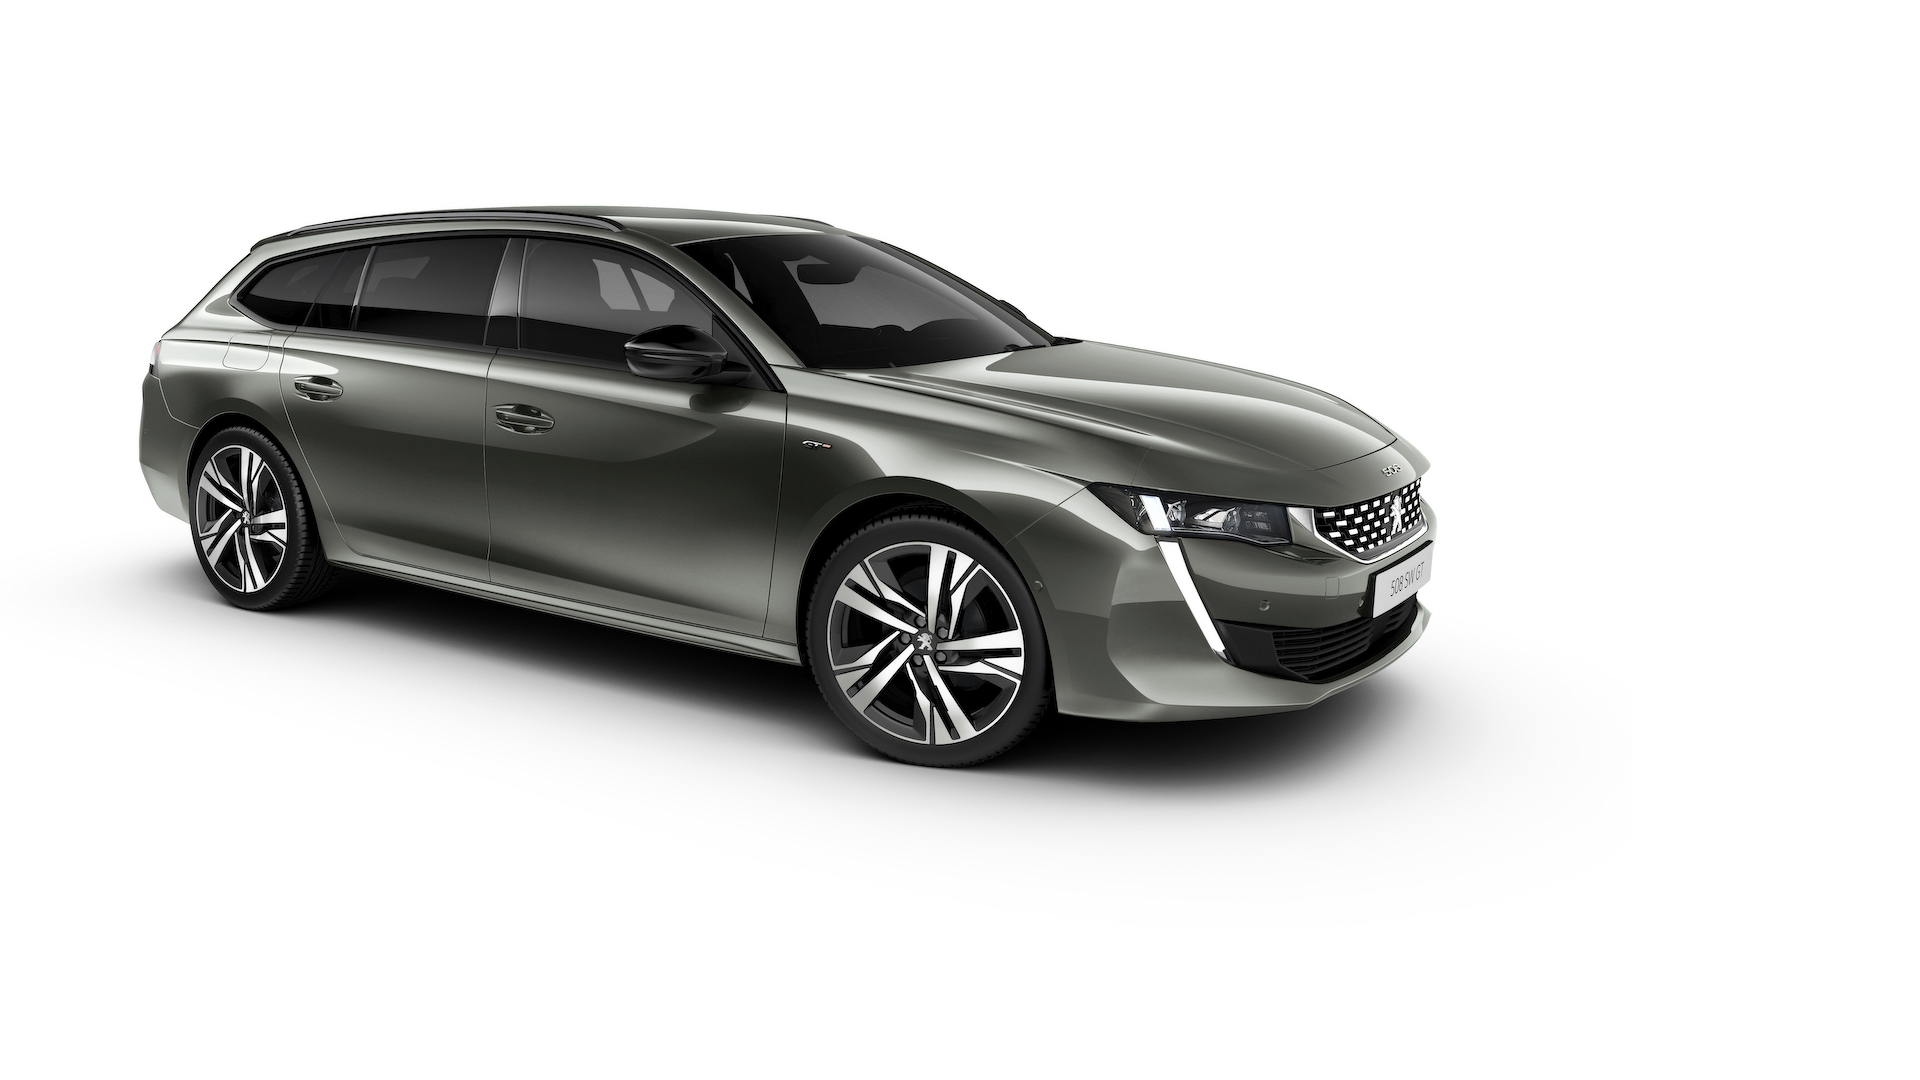 promo code 99c2e 620be The new PEUGEOT 508 SW will be presented at the Mondial de Paris 2018 and  marketed in Europe from January 2019.